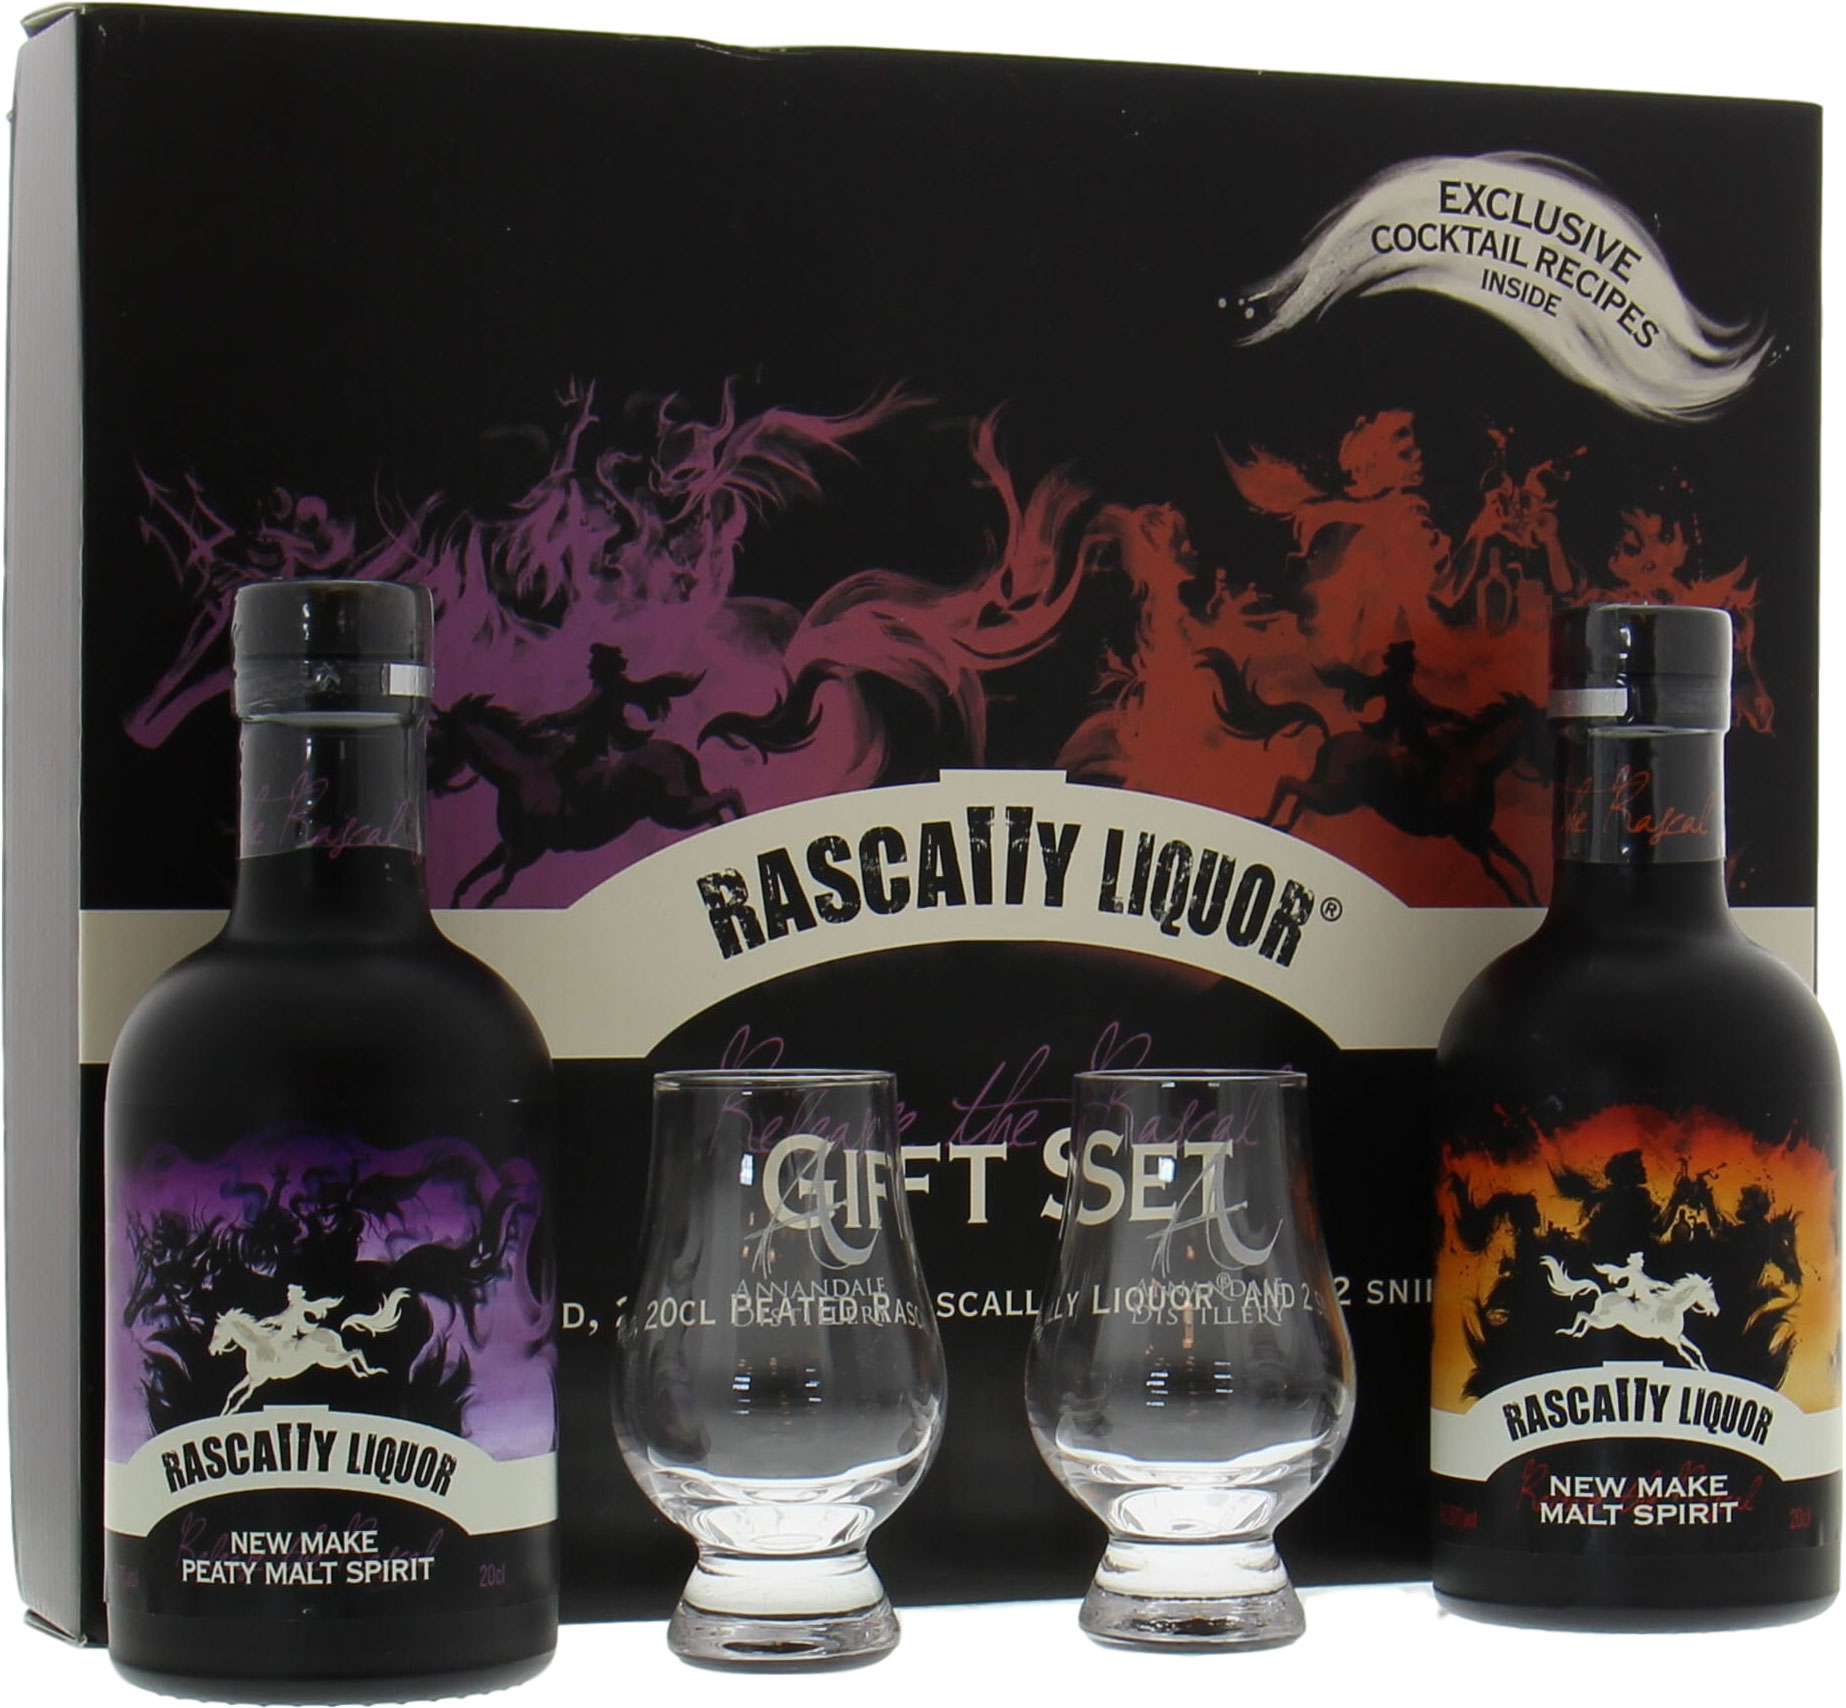 Annandale - Rascally Liquor Gift Set 63.5% NAS